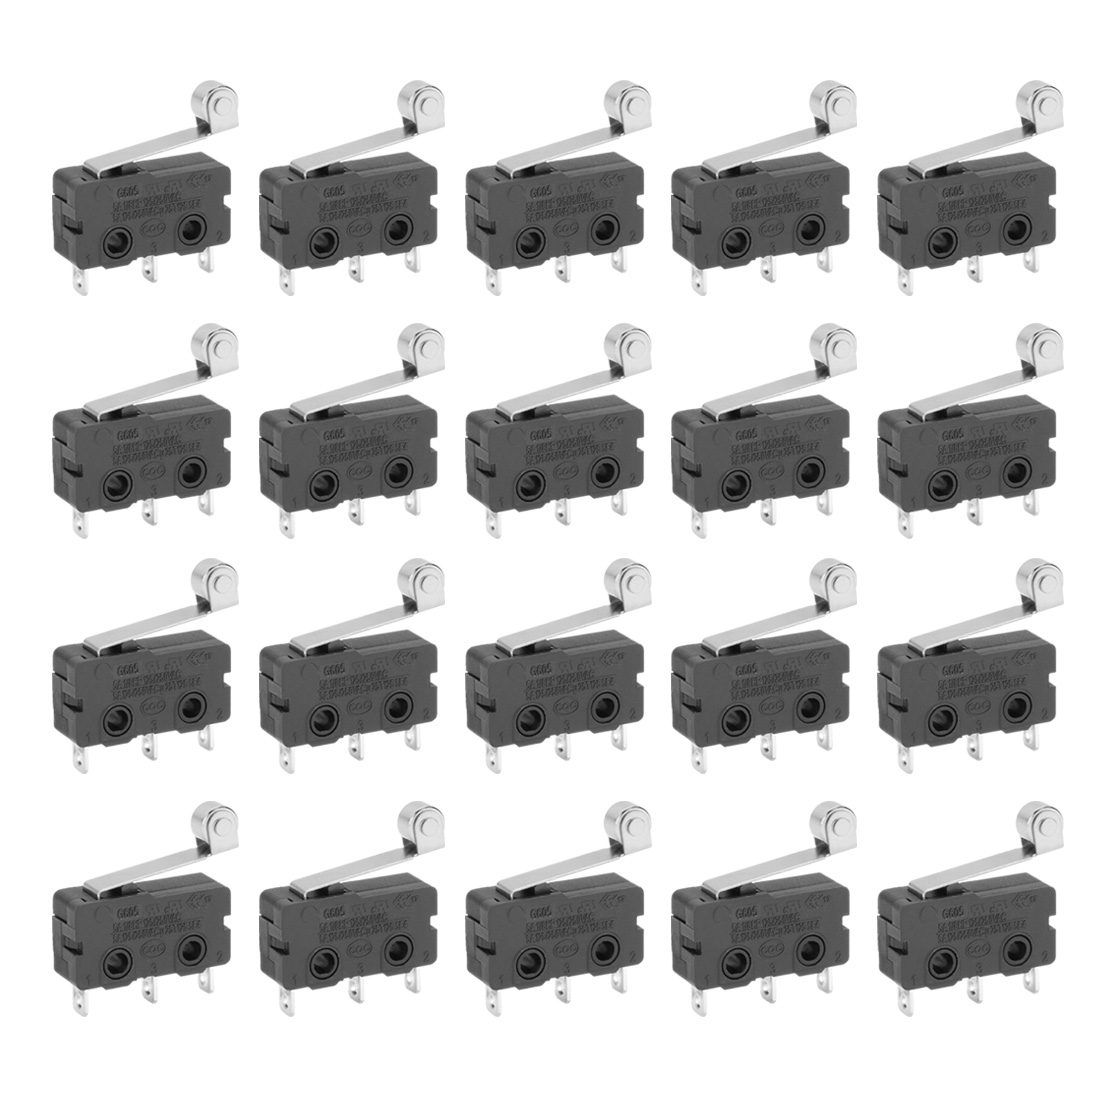 20PCS G605-150S06A AC 125/250V 5A Roller Lever Arm SPDT Momentary Miniature Micro Limit Switch Microswitch